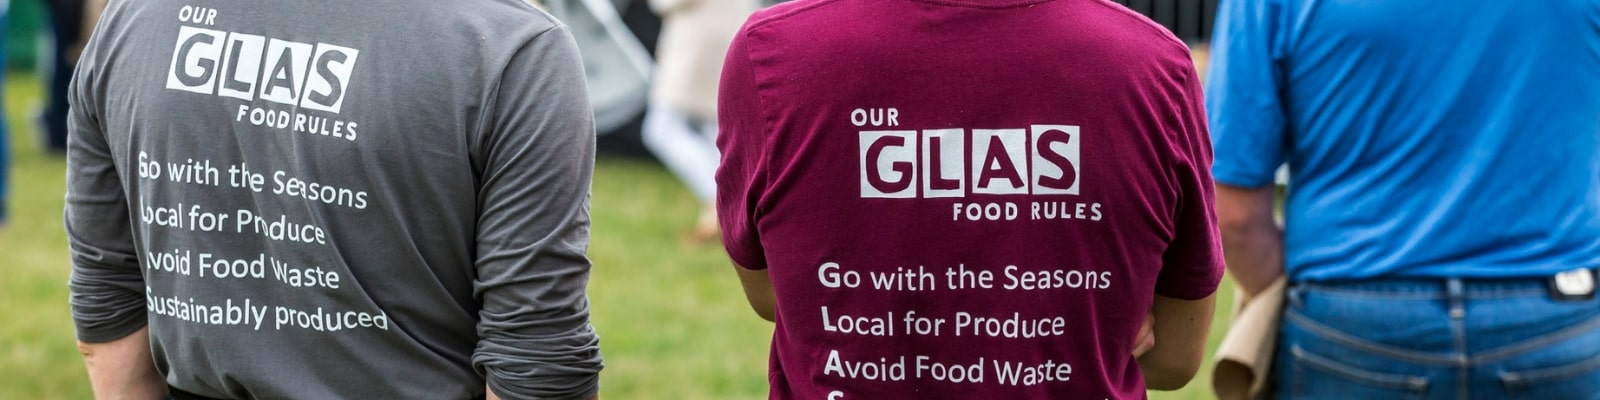 https://www.airfield.ie/wp-content/uploads/2019/05/Glas-Festival-of-Food-min.jpg